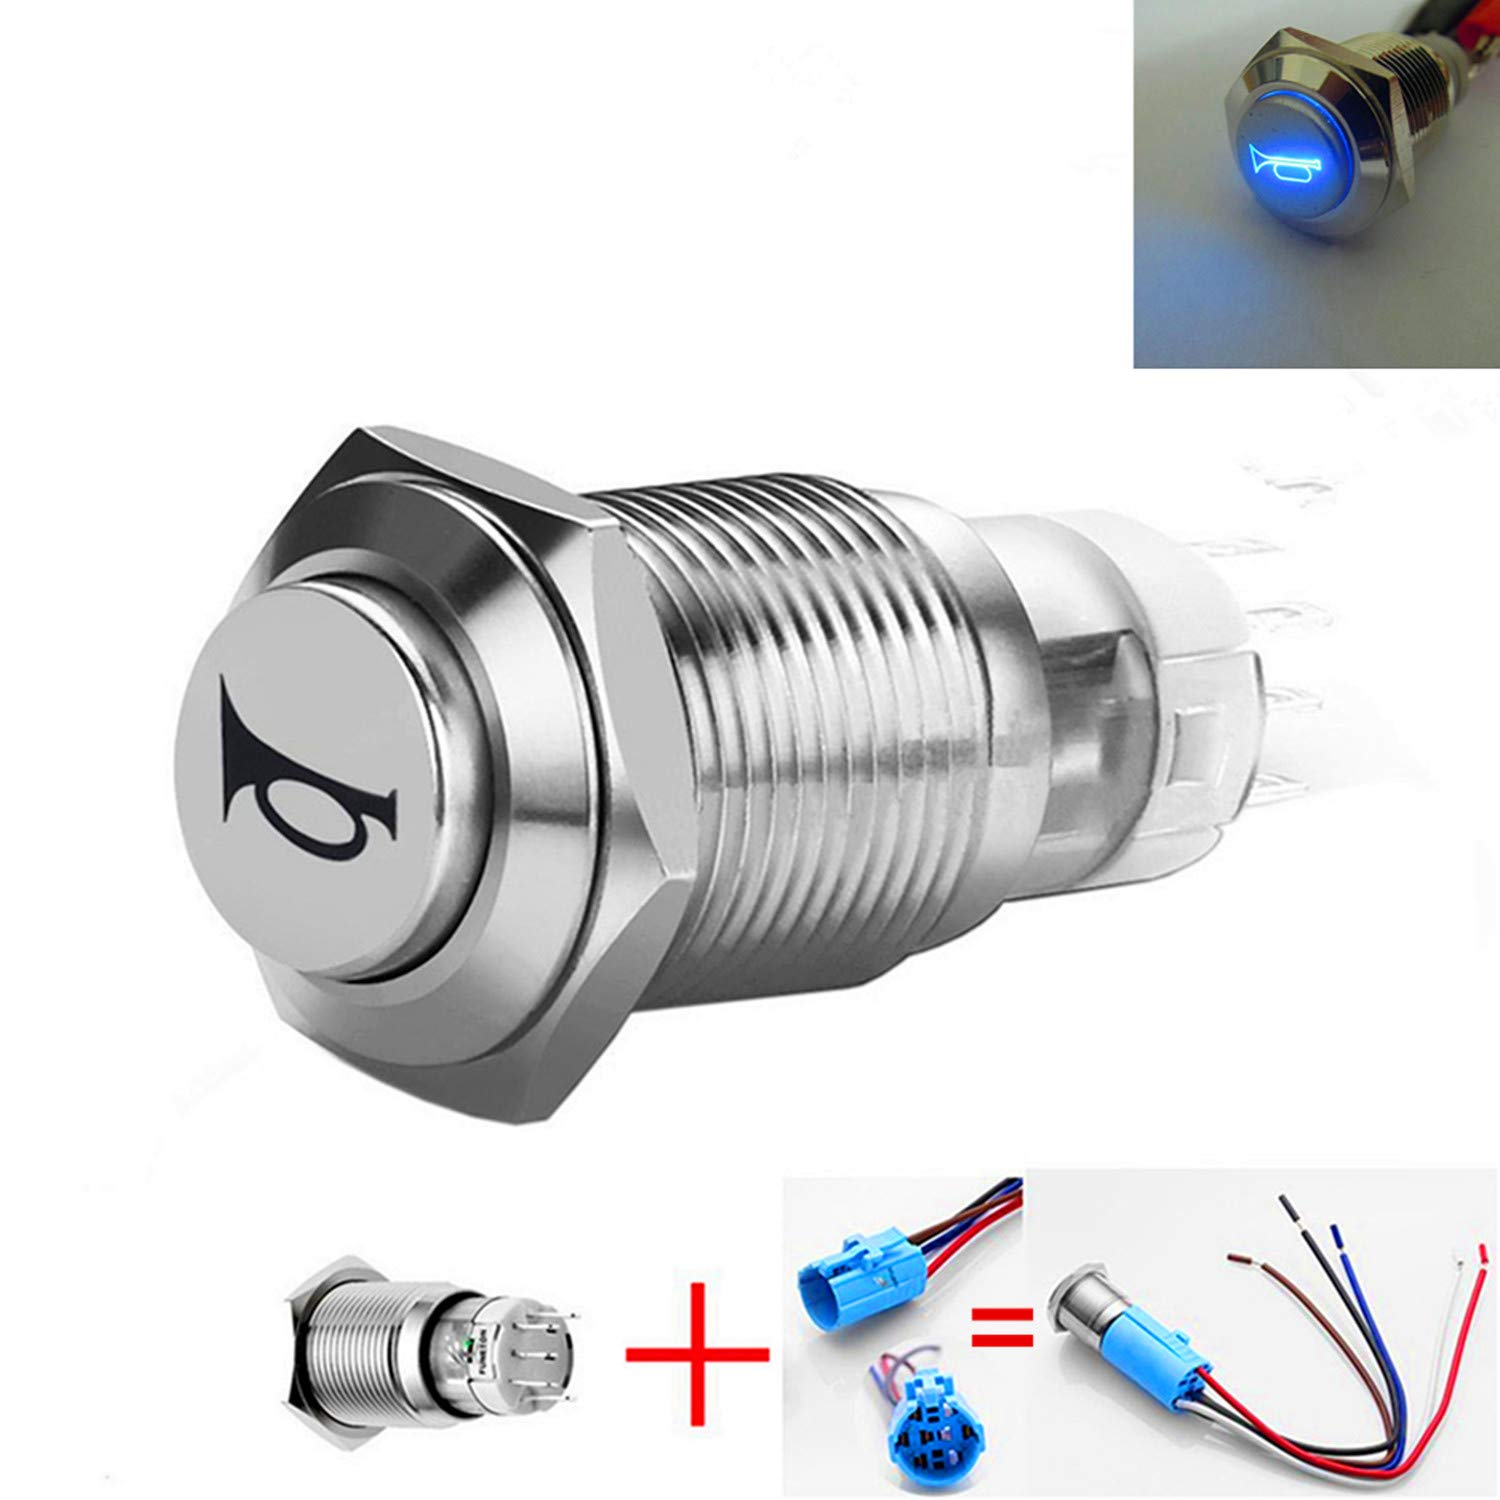 Twidec//16mm Raised Top Momentary Push Button Switch 1NO 1NC SPDT Mounting Hole Black Waterproof Stainless Steel Shell with 12V Led Red Ring Pre-wiring Wires for car Modification Switch GM16O-BK-R